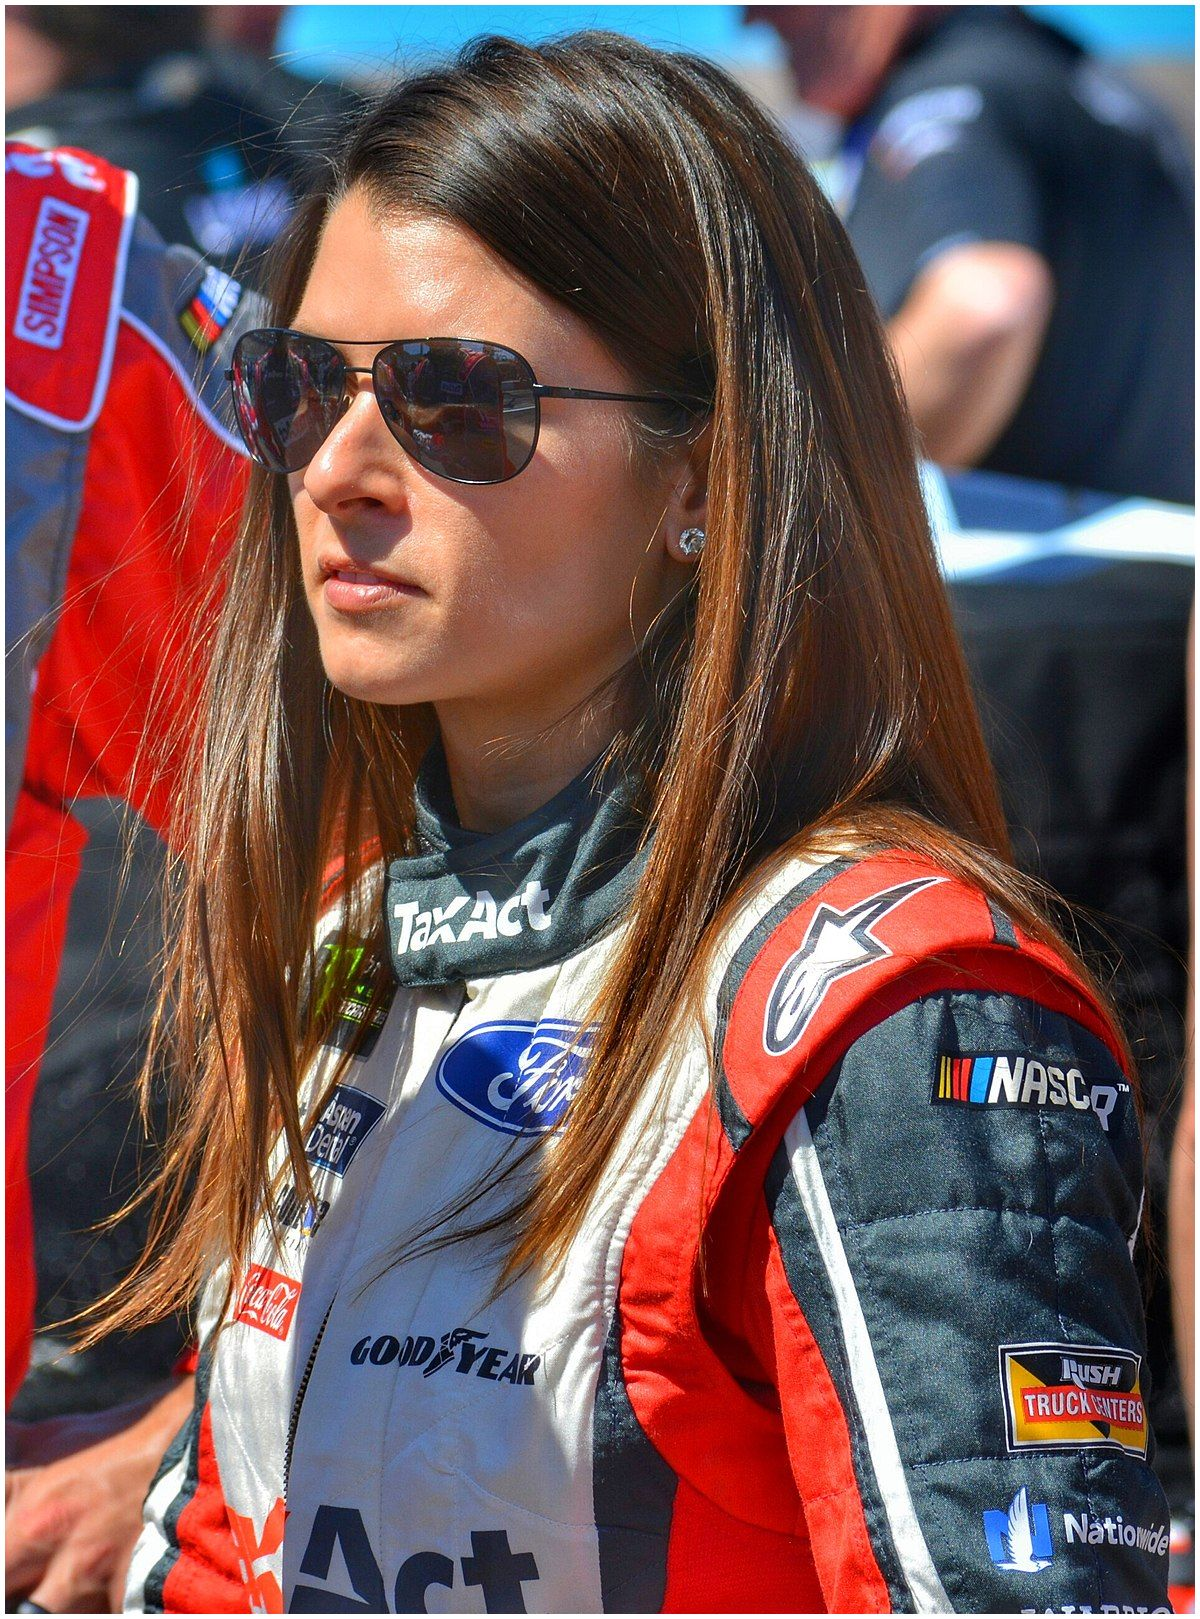 1200px Danica Patrick 2017 Camping World 500 Driver s Parade on Pit Road